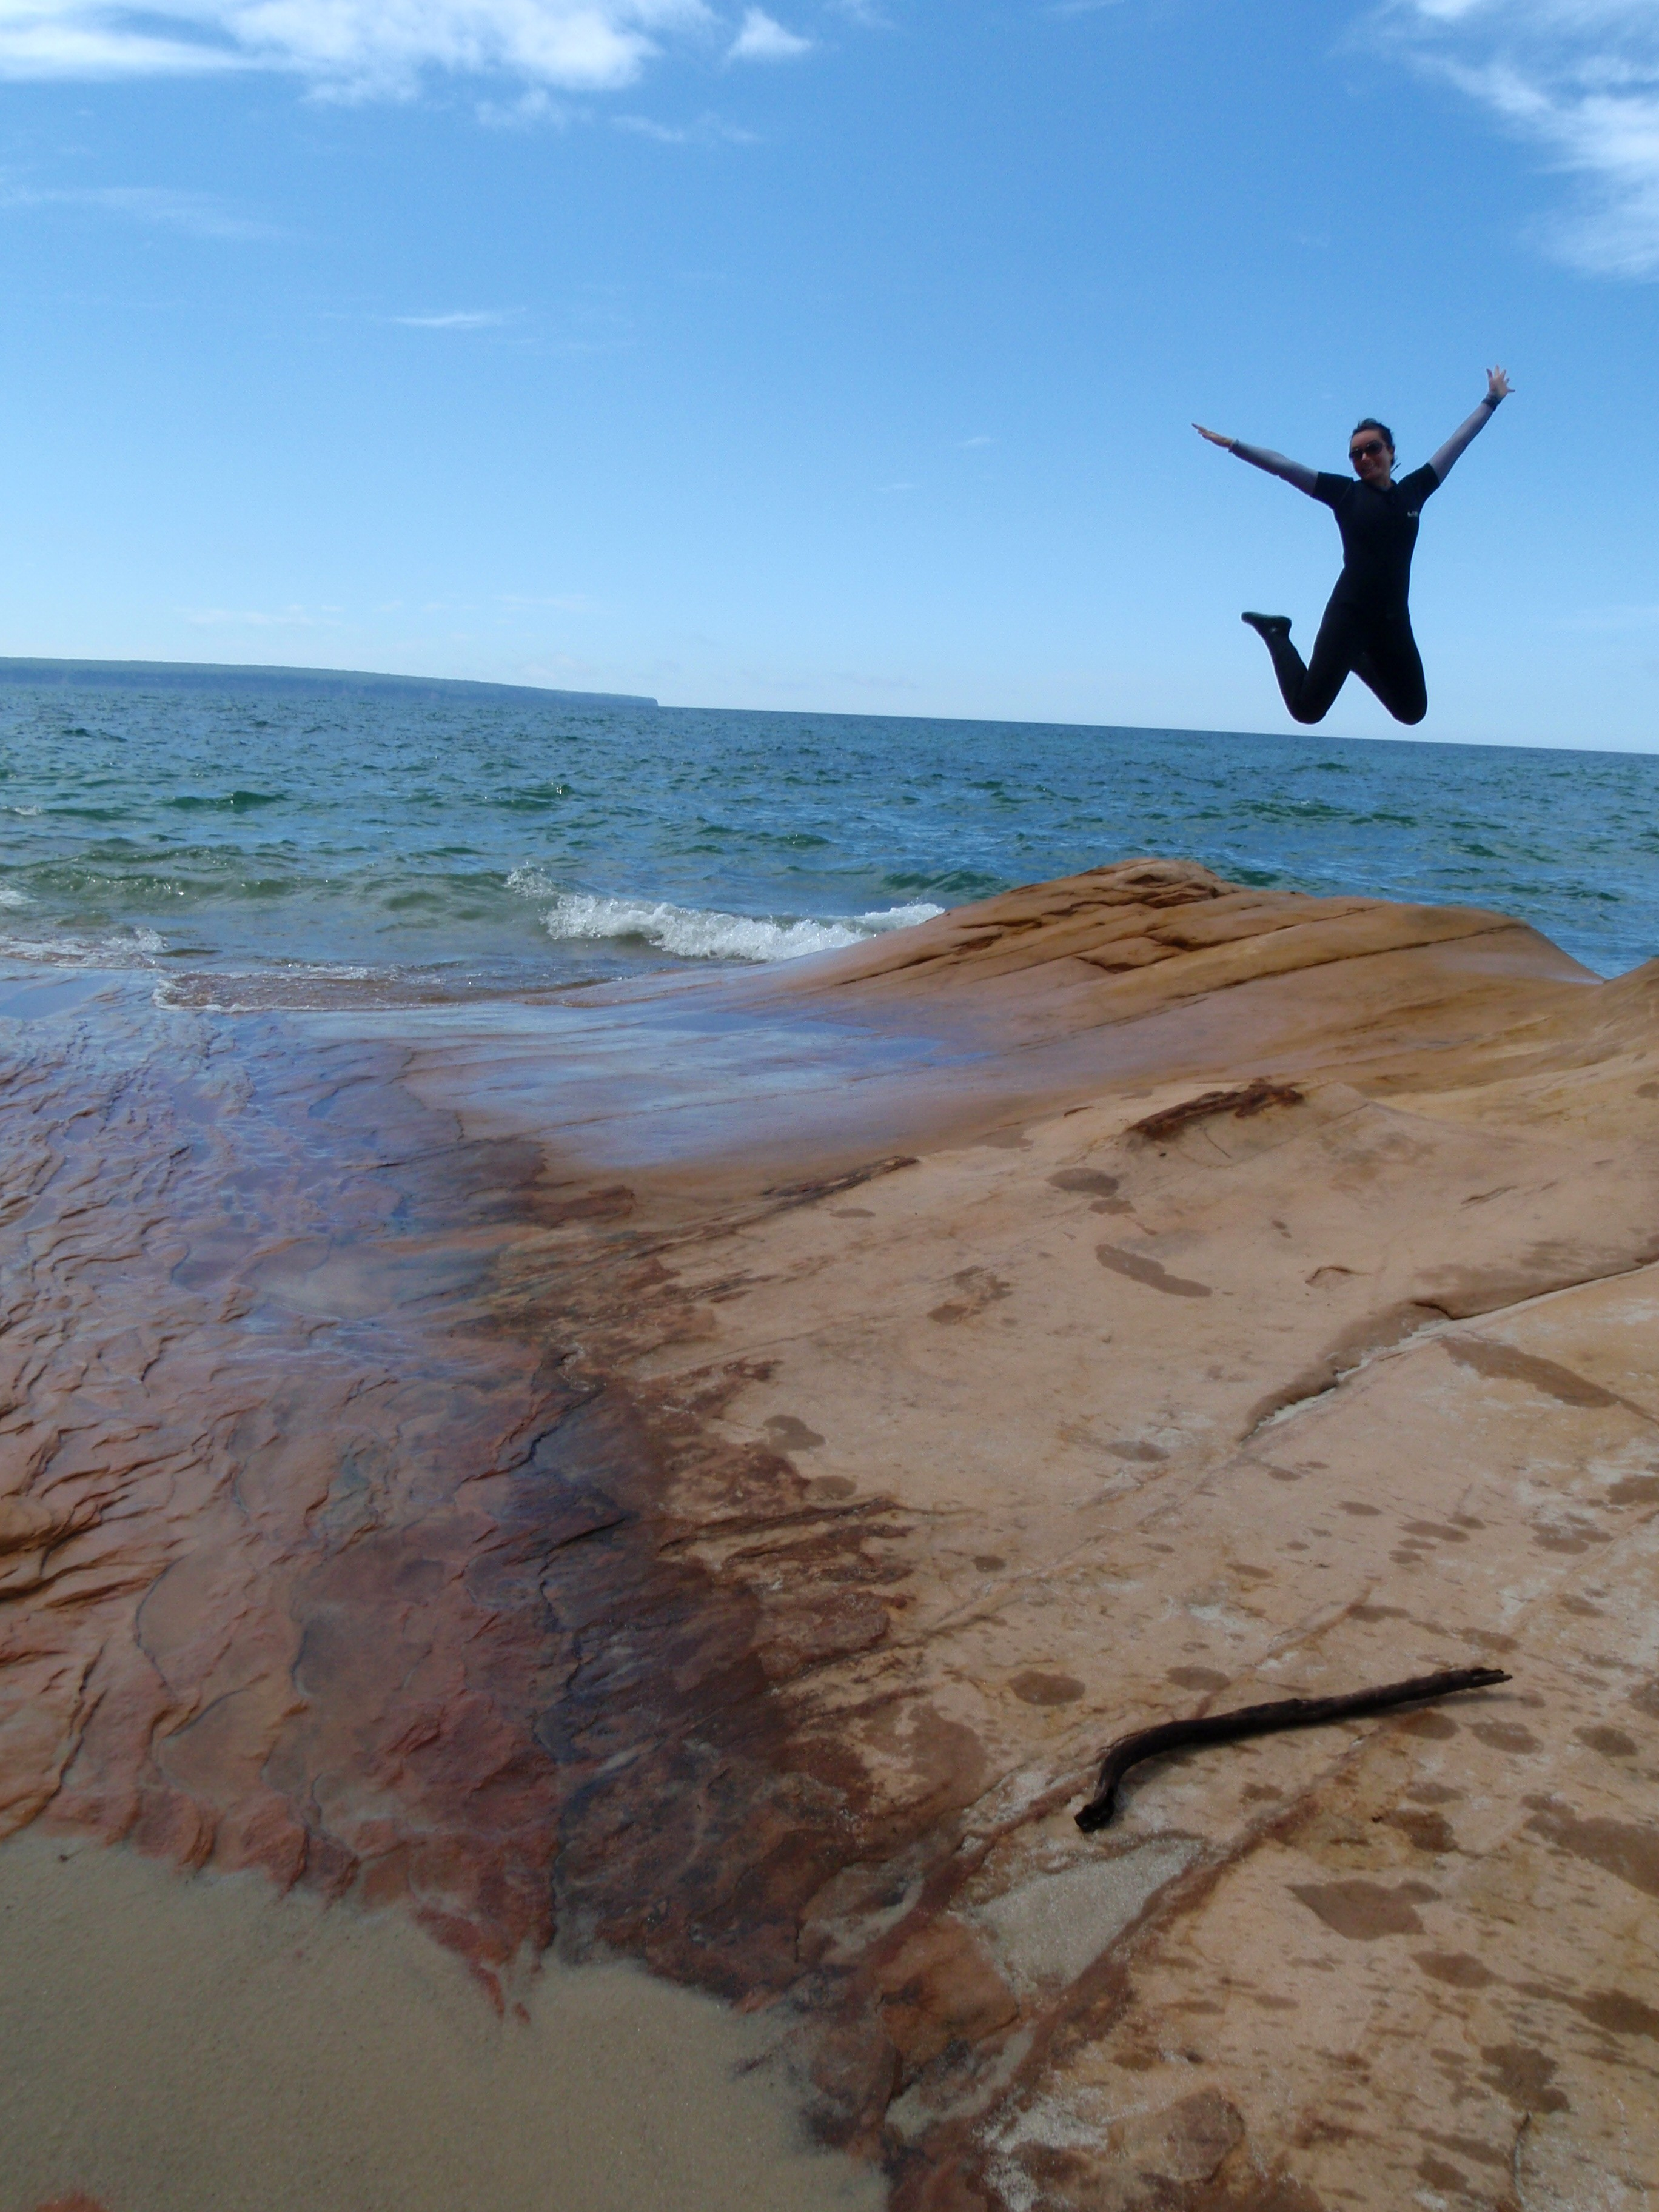 Pictured Rocks National Shoreline Kayaking, Michigan kayaking, lake superior kayaking